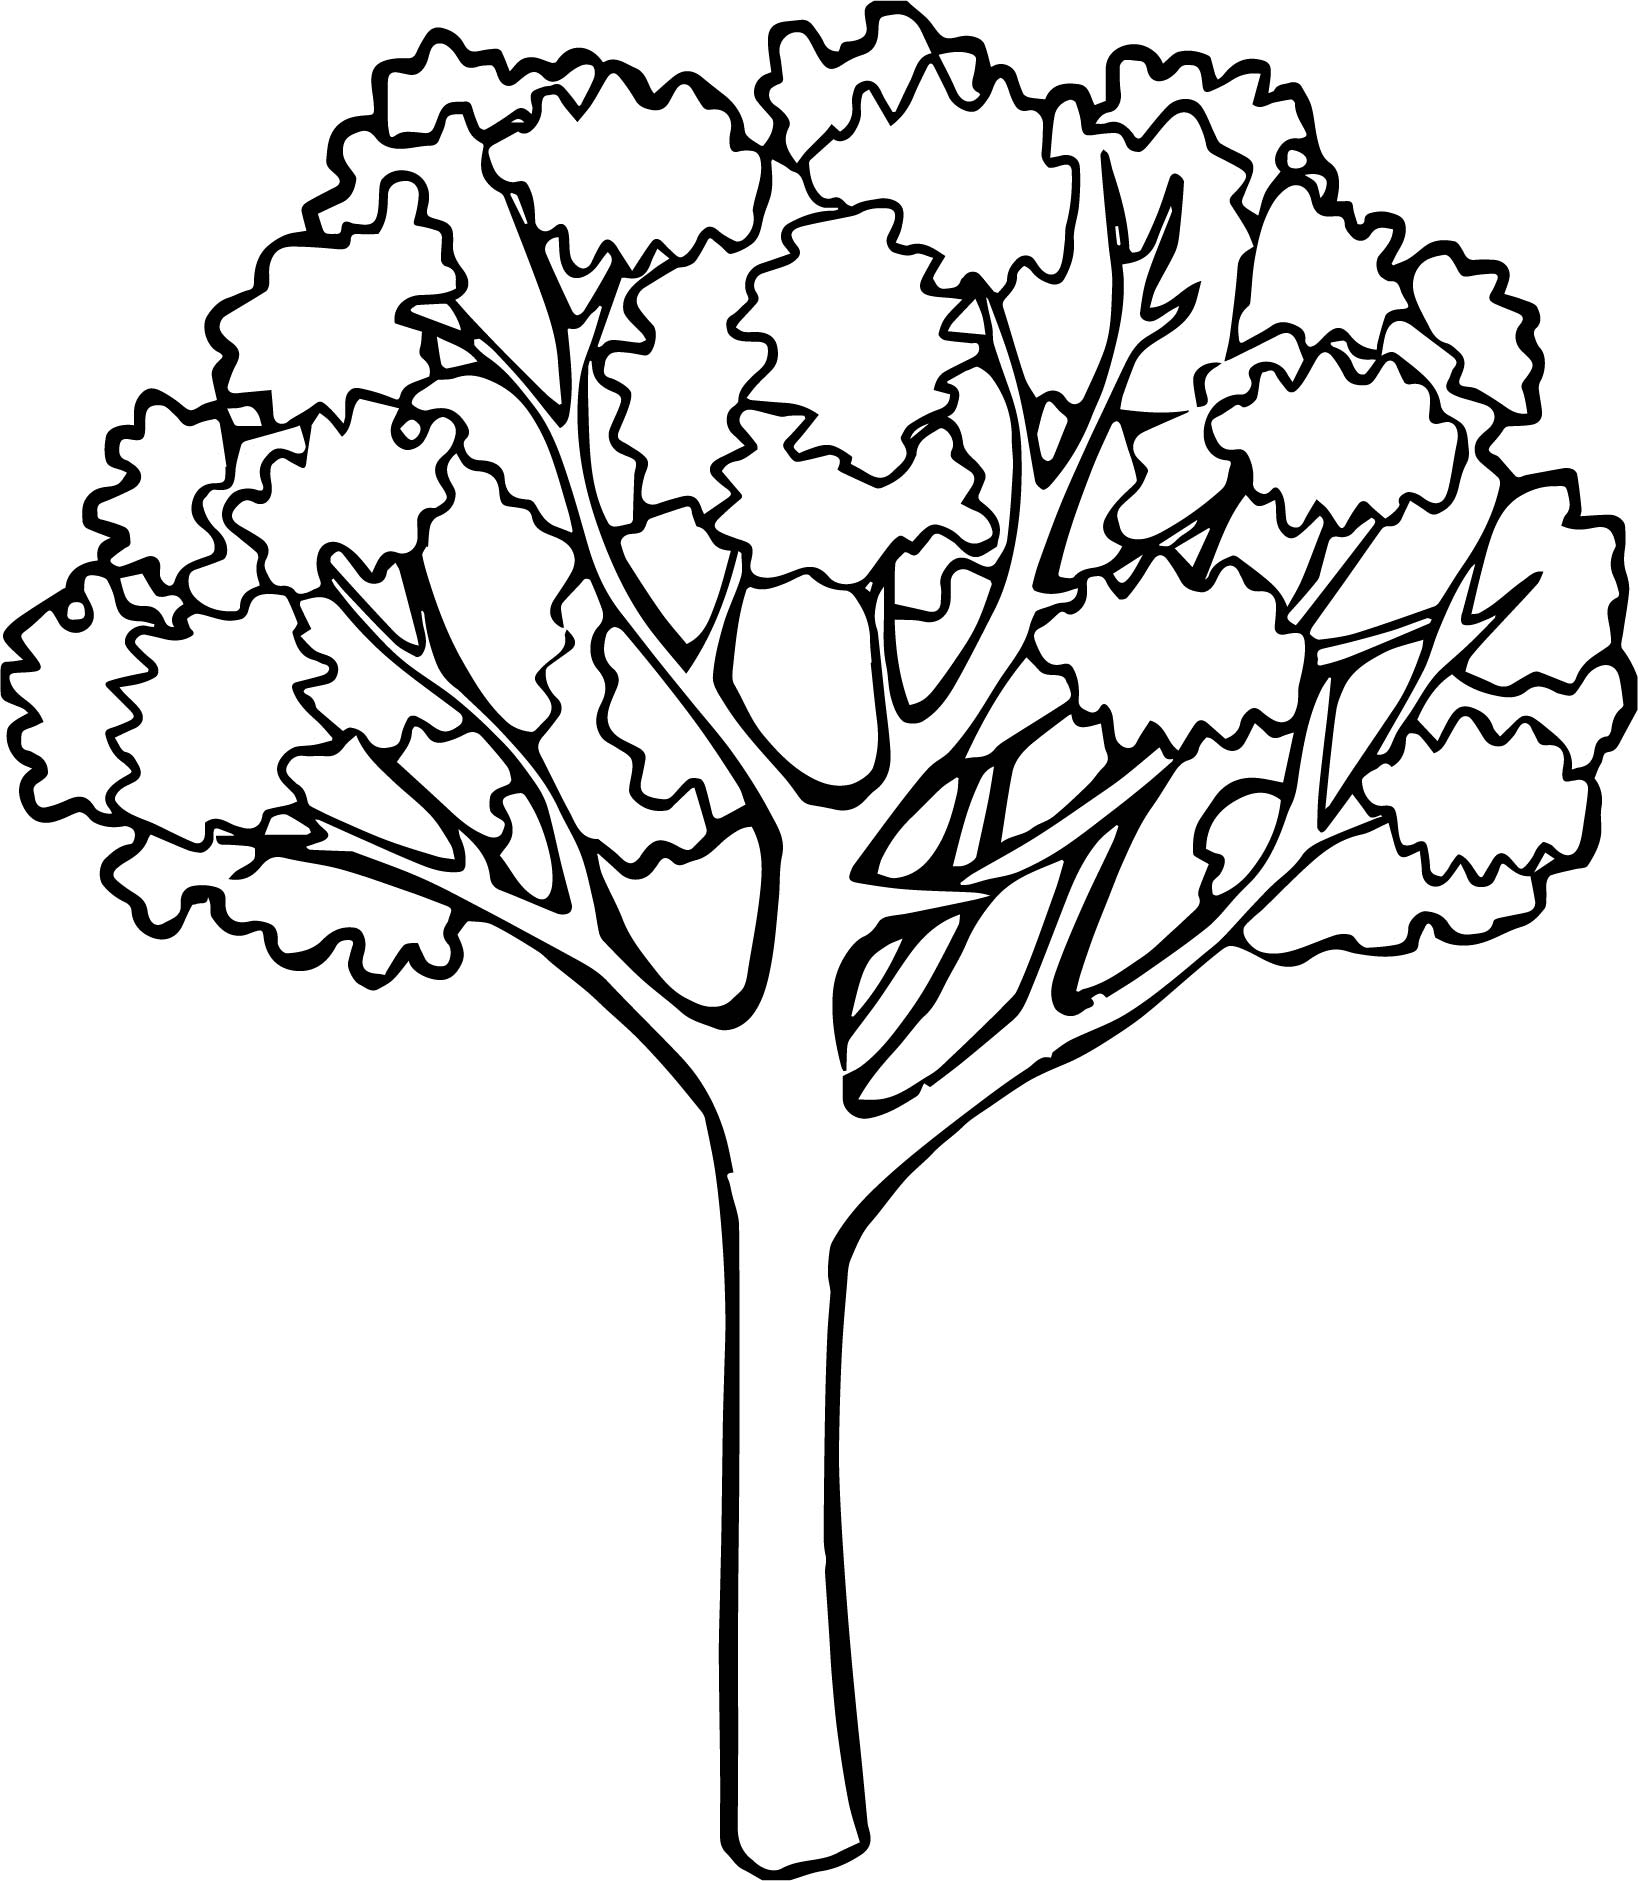 Autumn One Tree Coloring PageAutumn One Tree Coloring Page